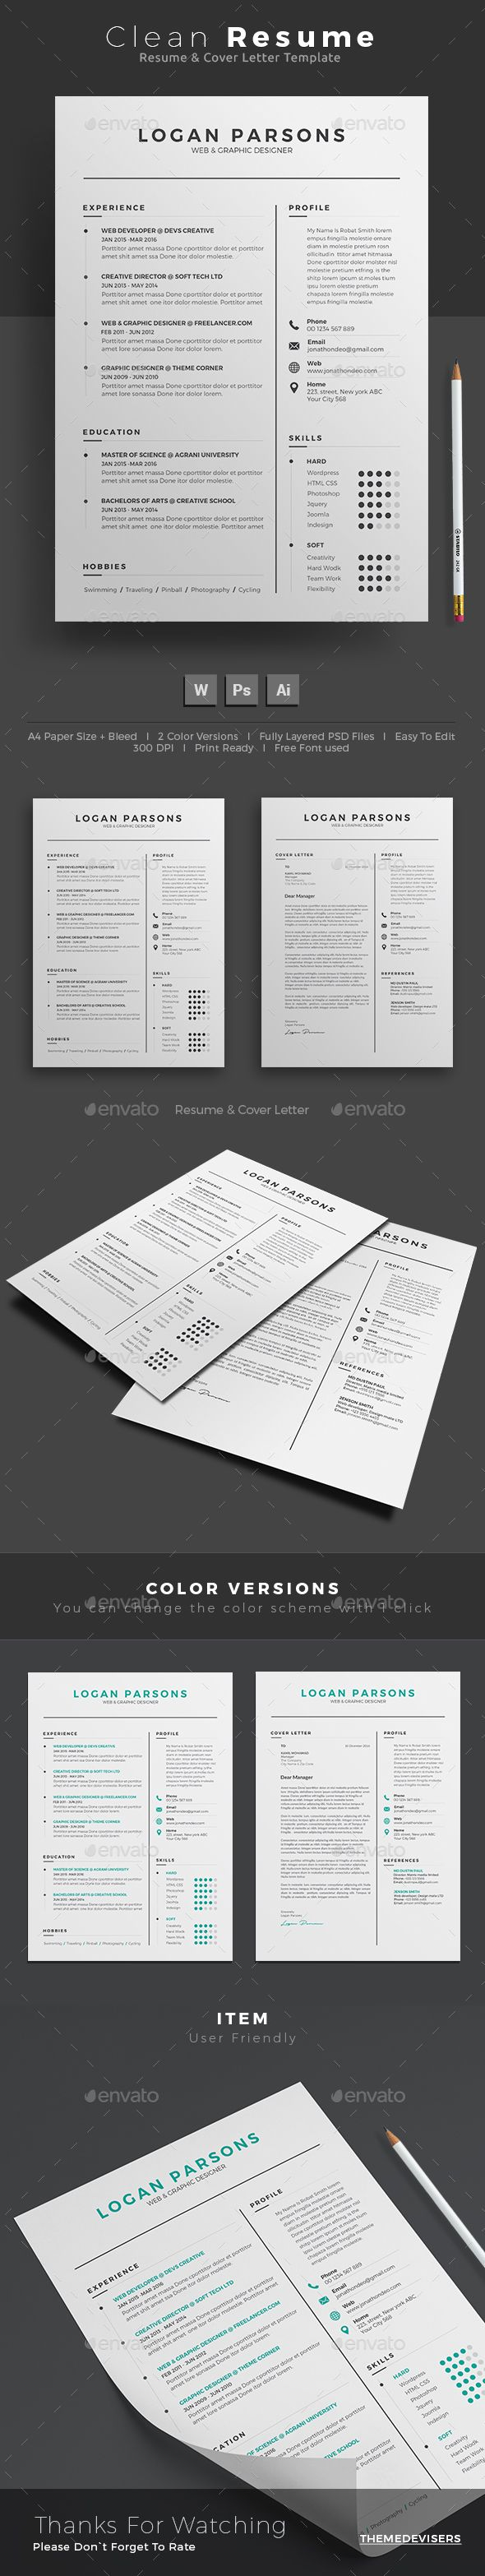 How To Configure A Printer For Third Party Paper Printing Staples Print Resumes Properly